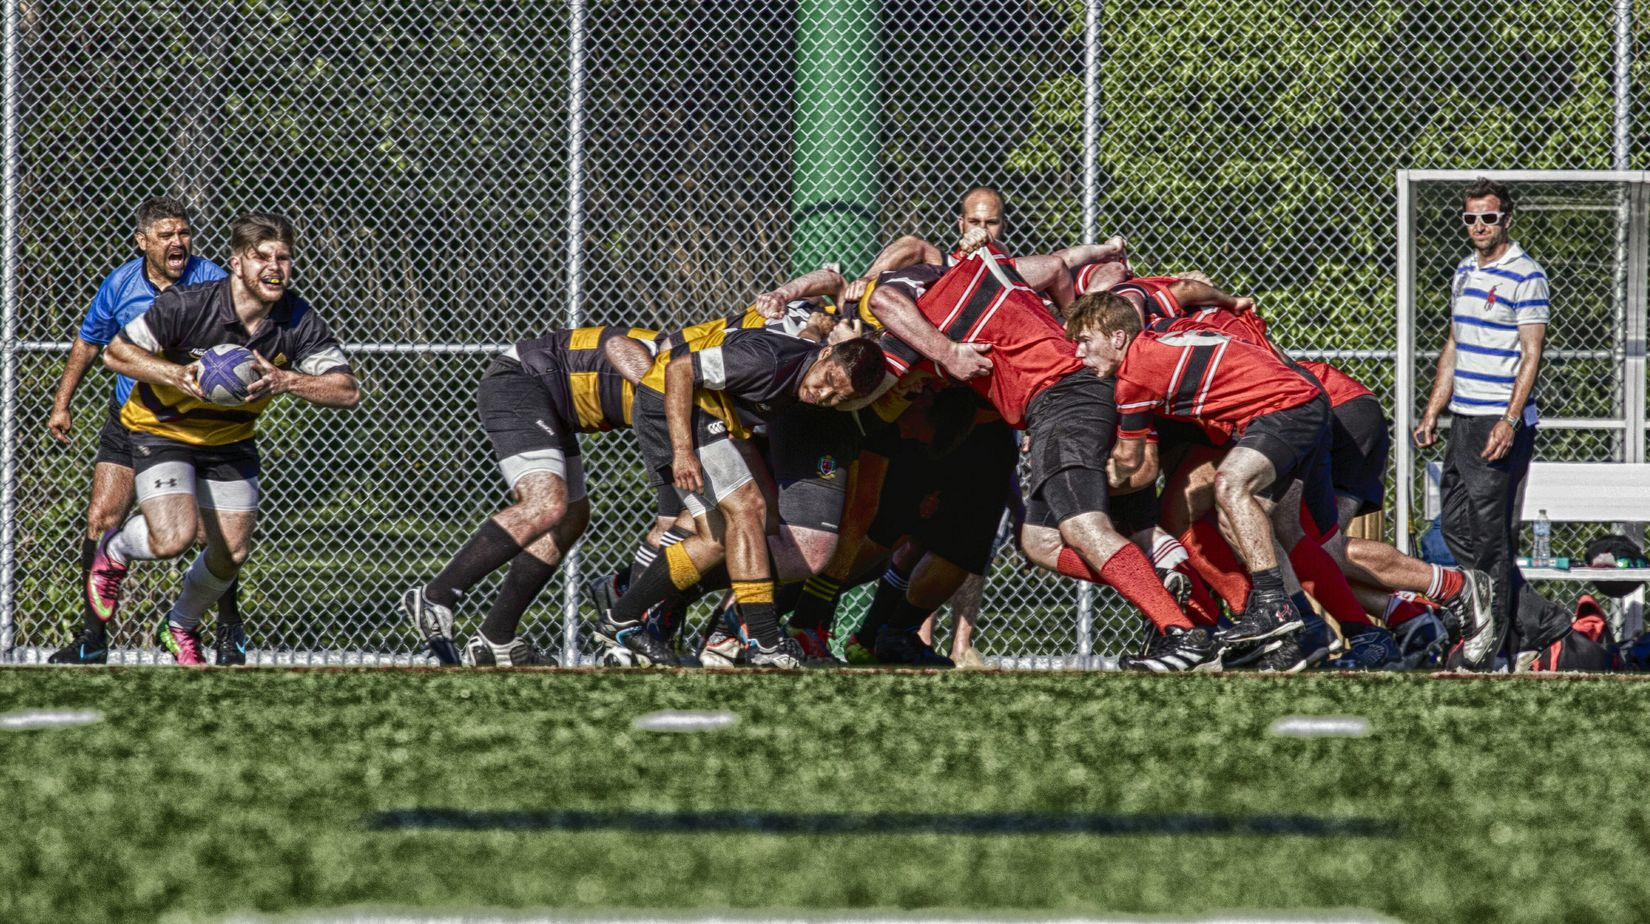 I was asked to take photos of a big final matchup between some local rugby teams. This was one of my personal faves. Sports Sports Photography EyeEm Best Shots Rugby Watching Rugby Body And Fitness Fitness Eye4photography  Eye For Photography Action Shot